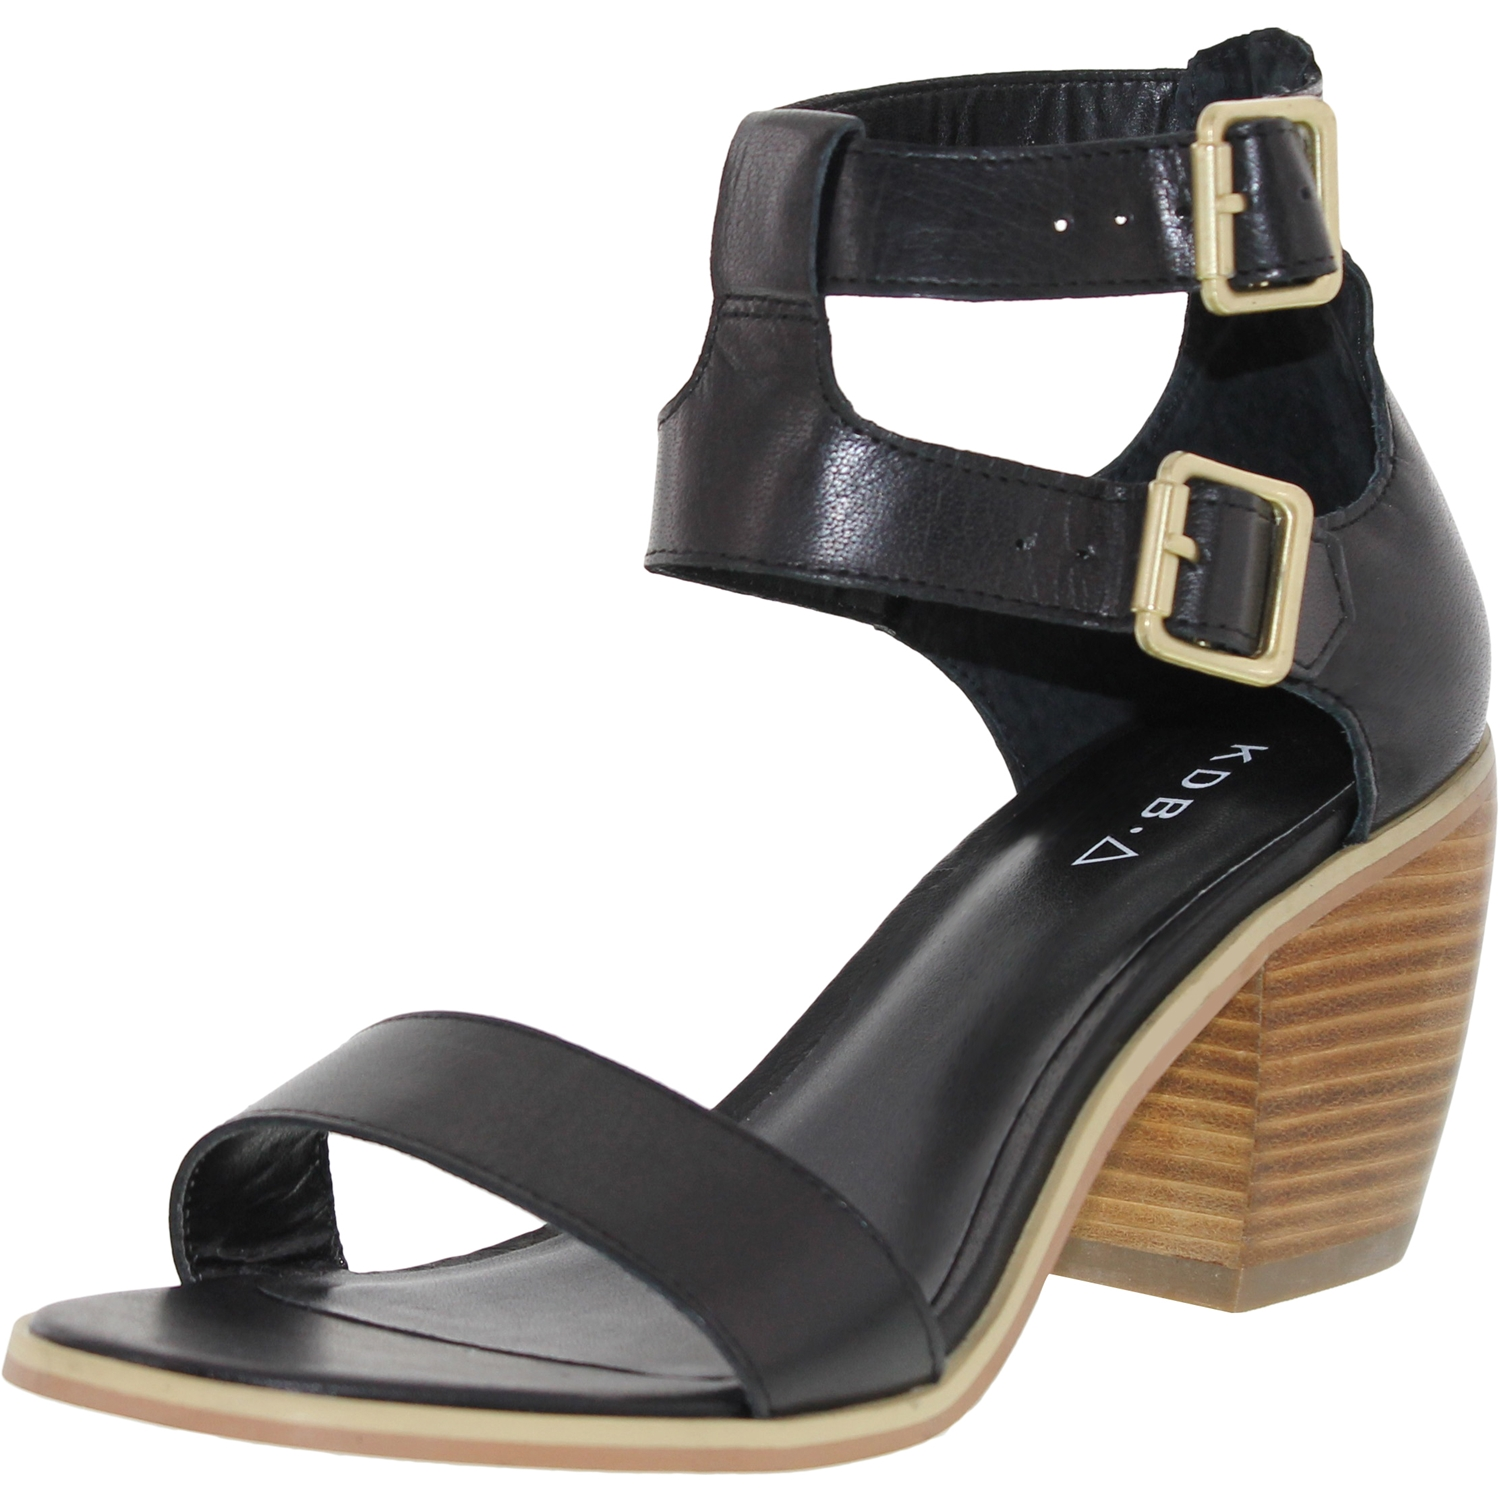 Kelsi Dagger Women's Katamandu Ankle-High Leather Sandal